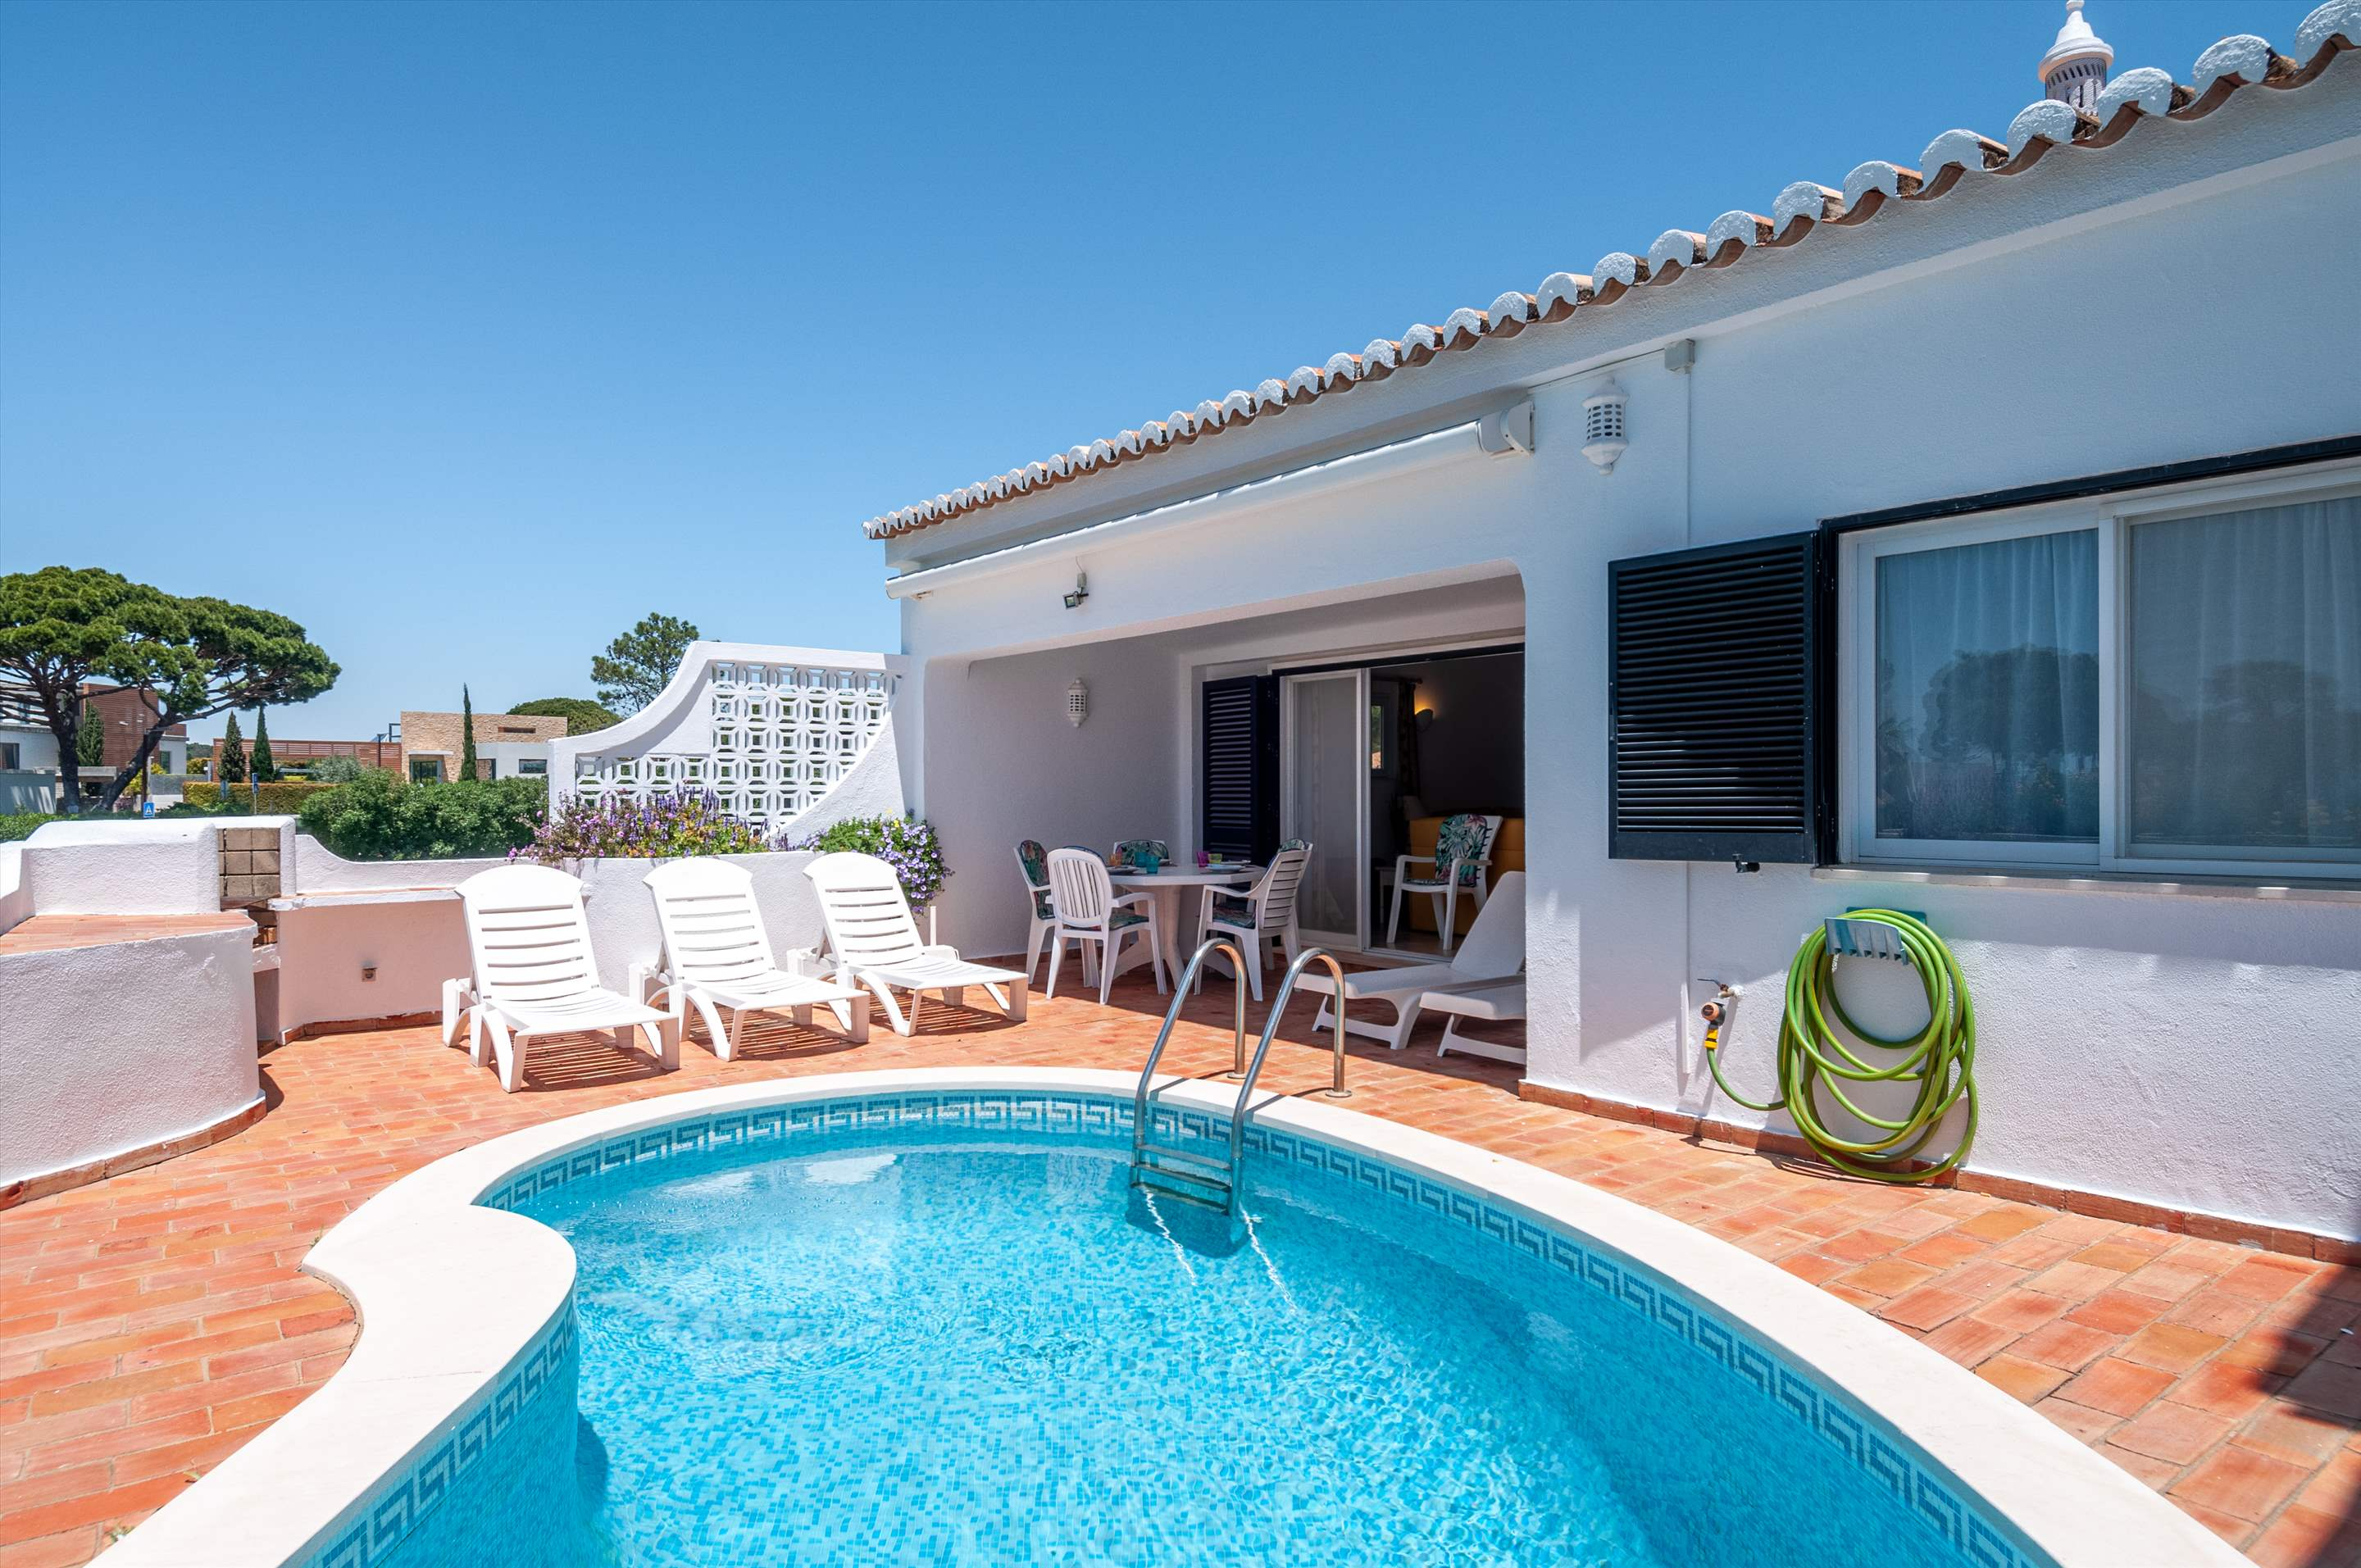 Villa Mimosa 6, 3 bedroom villa in Vale do Lobo, Algarve Photo #2